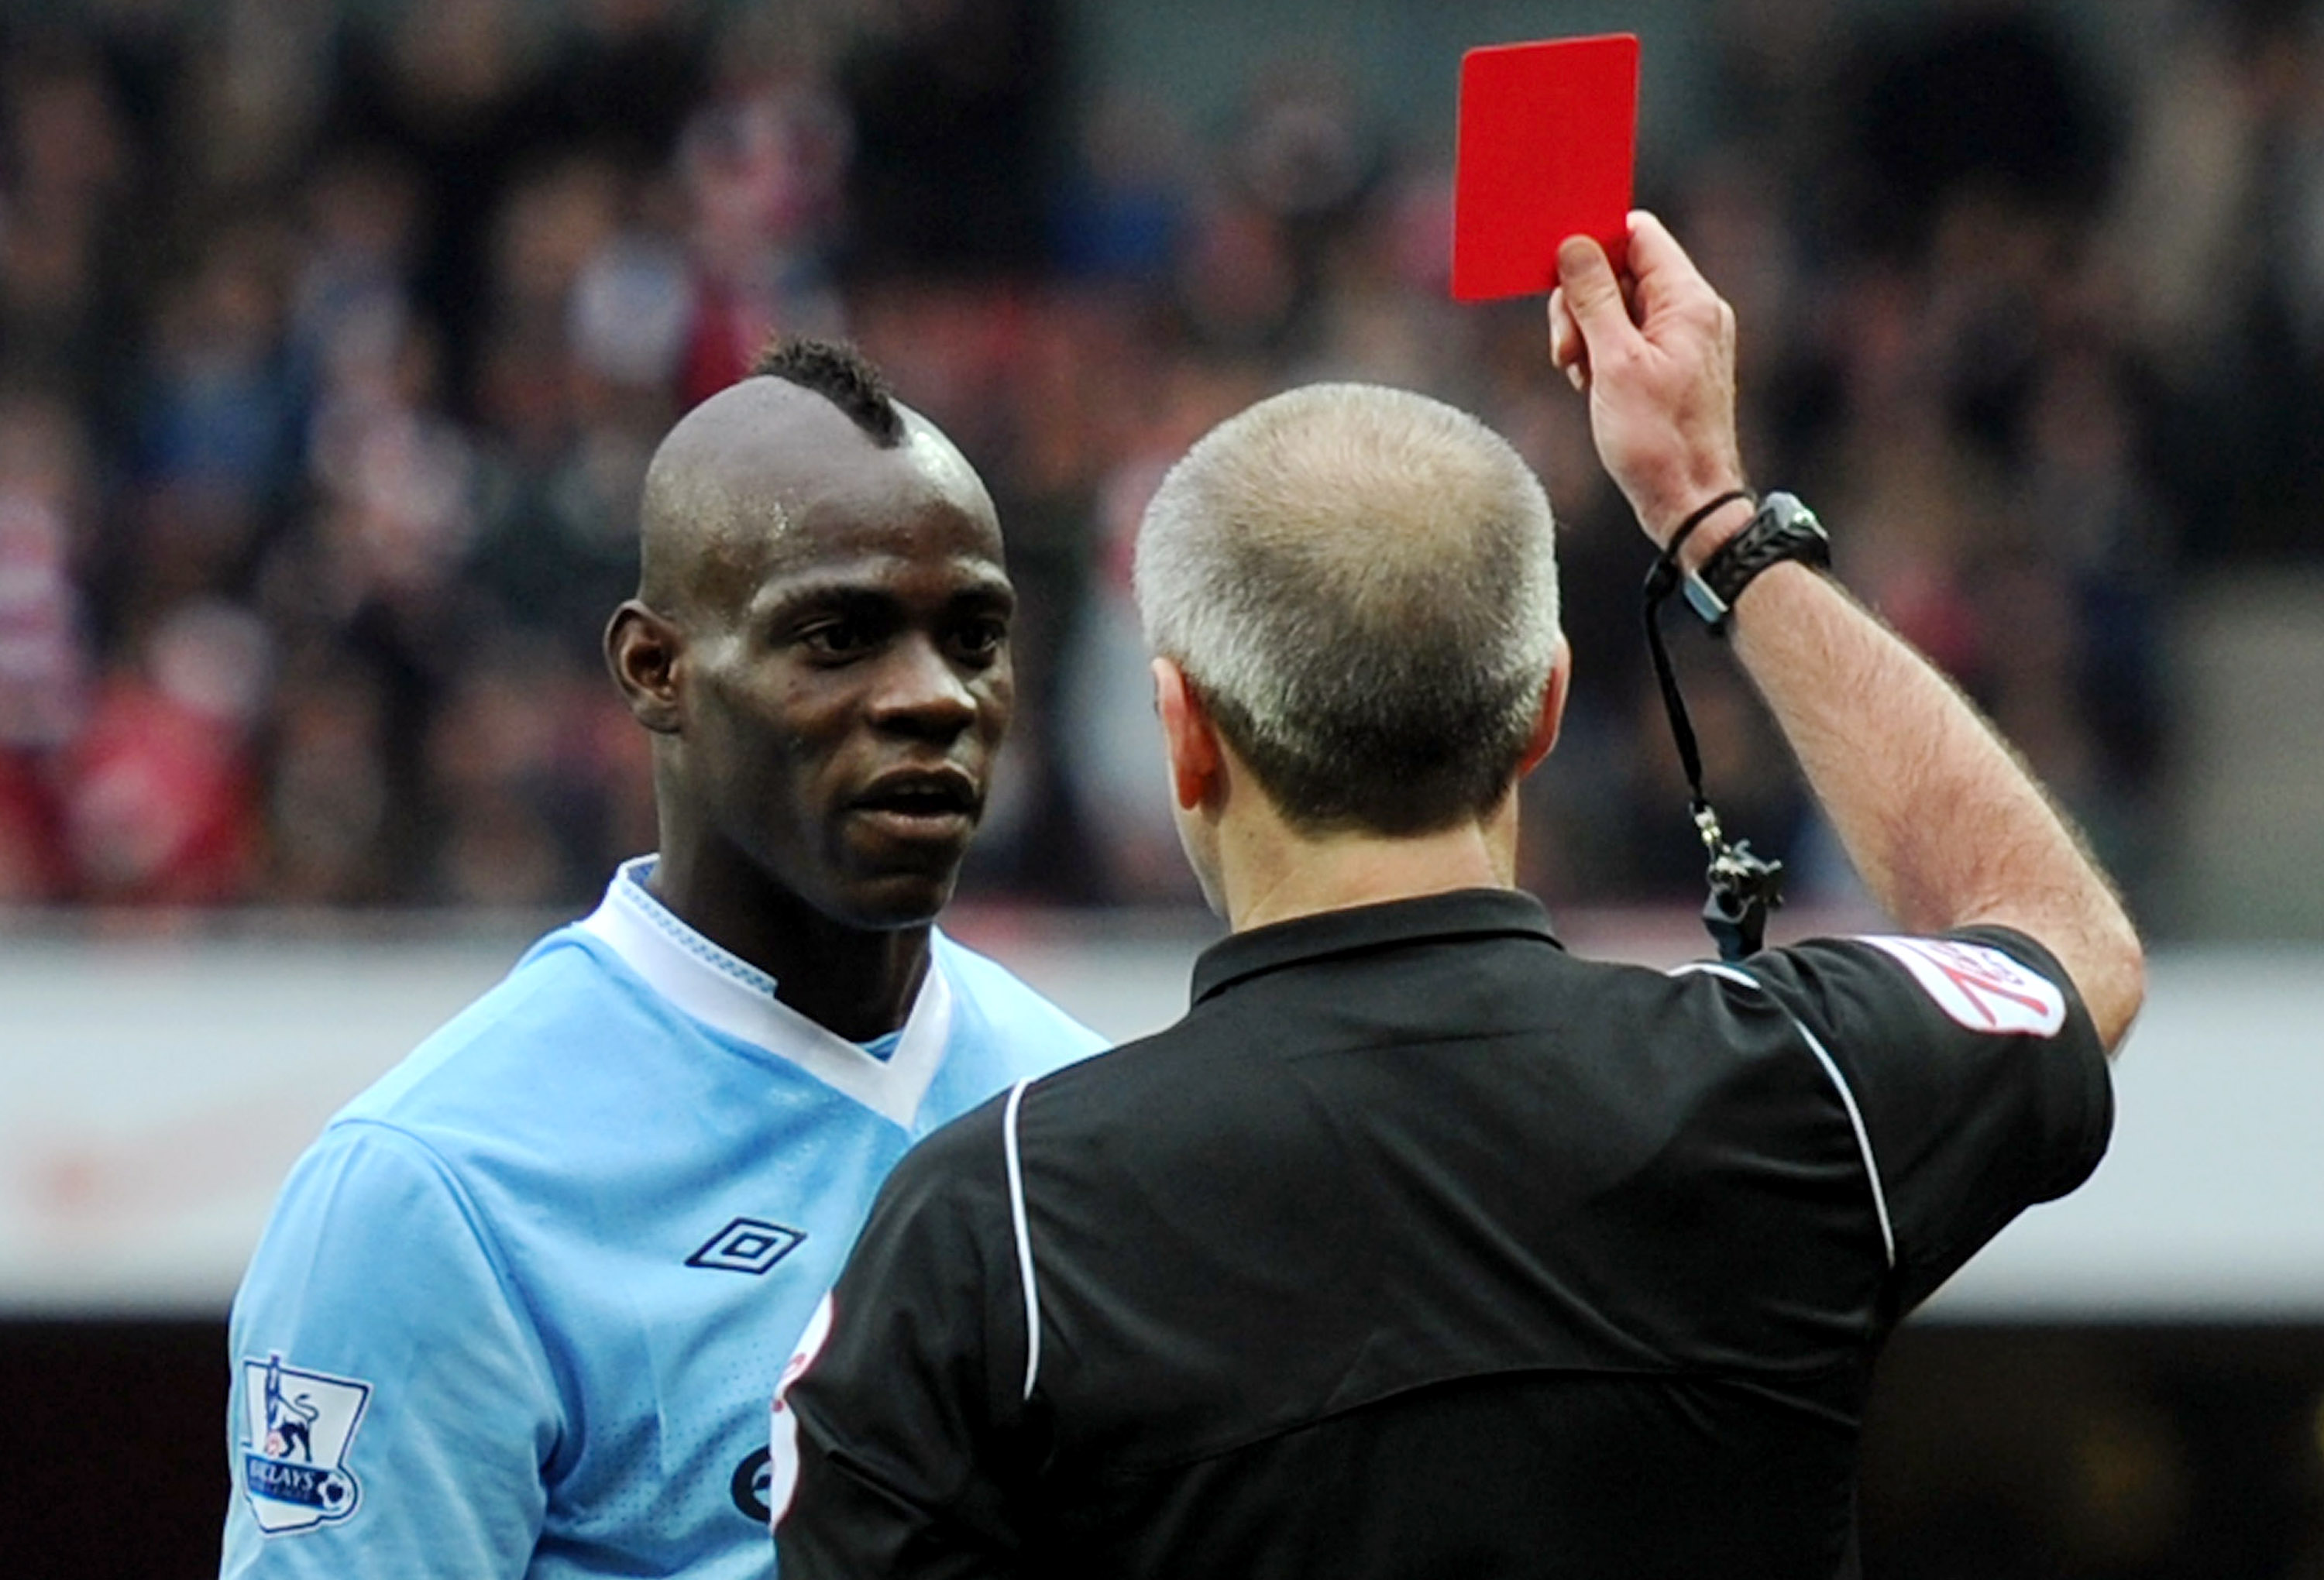 Football deals revealed: Mario Balotelli gets £1m from Liverpool for not seeing red